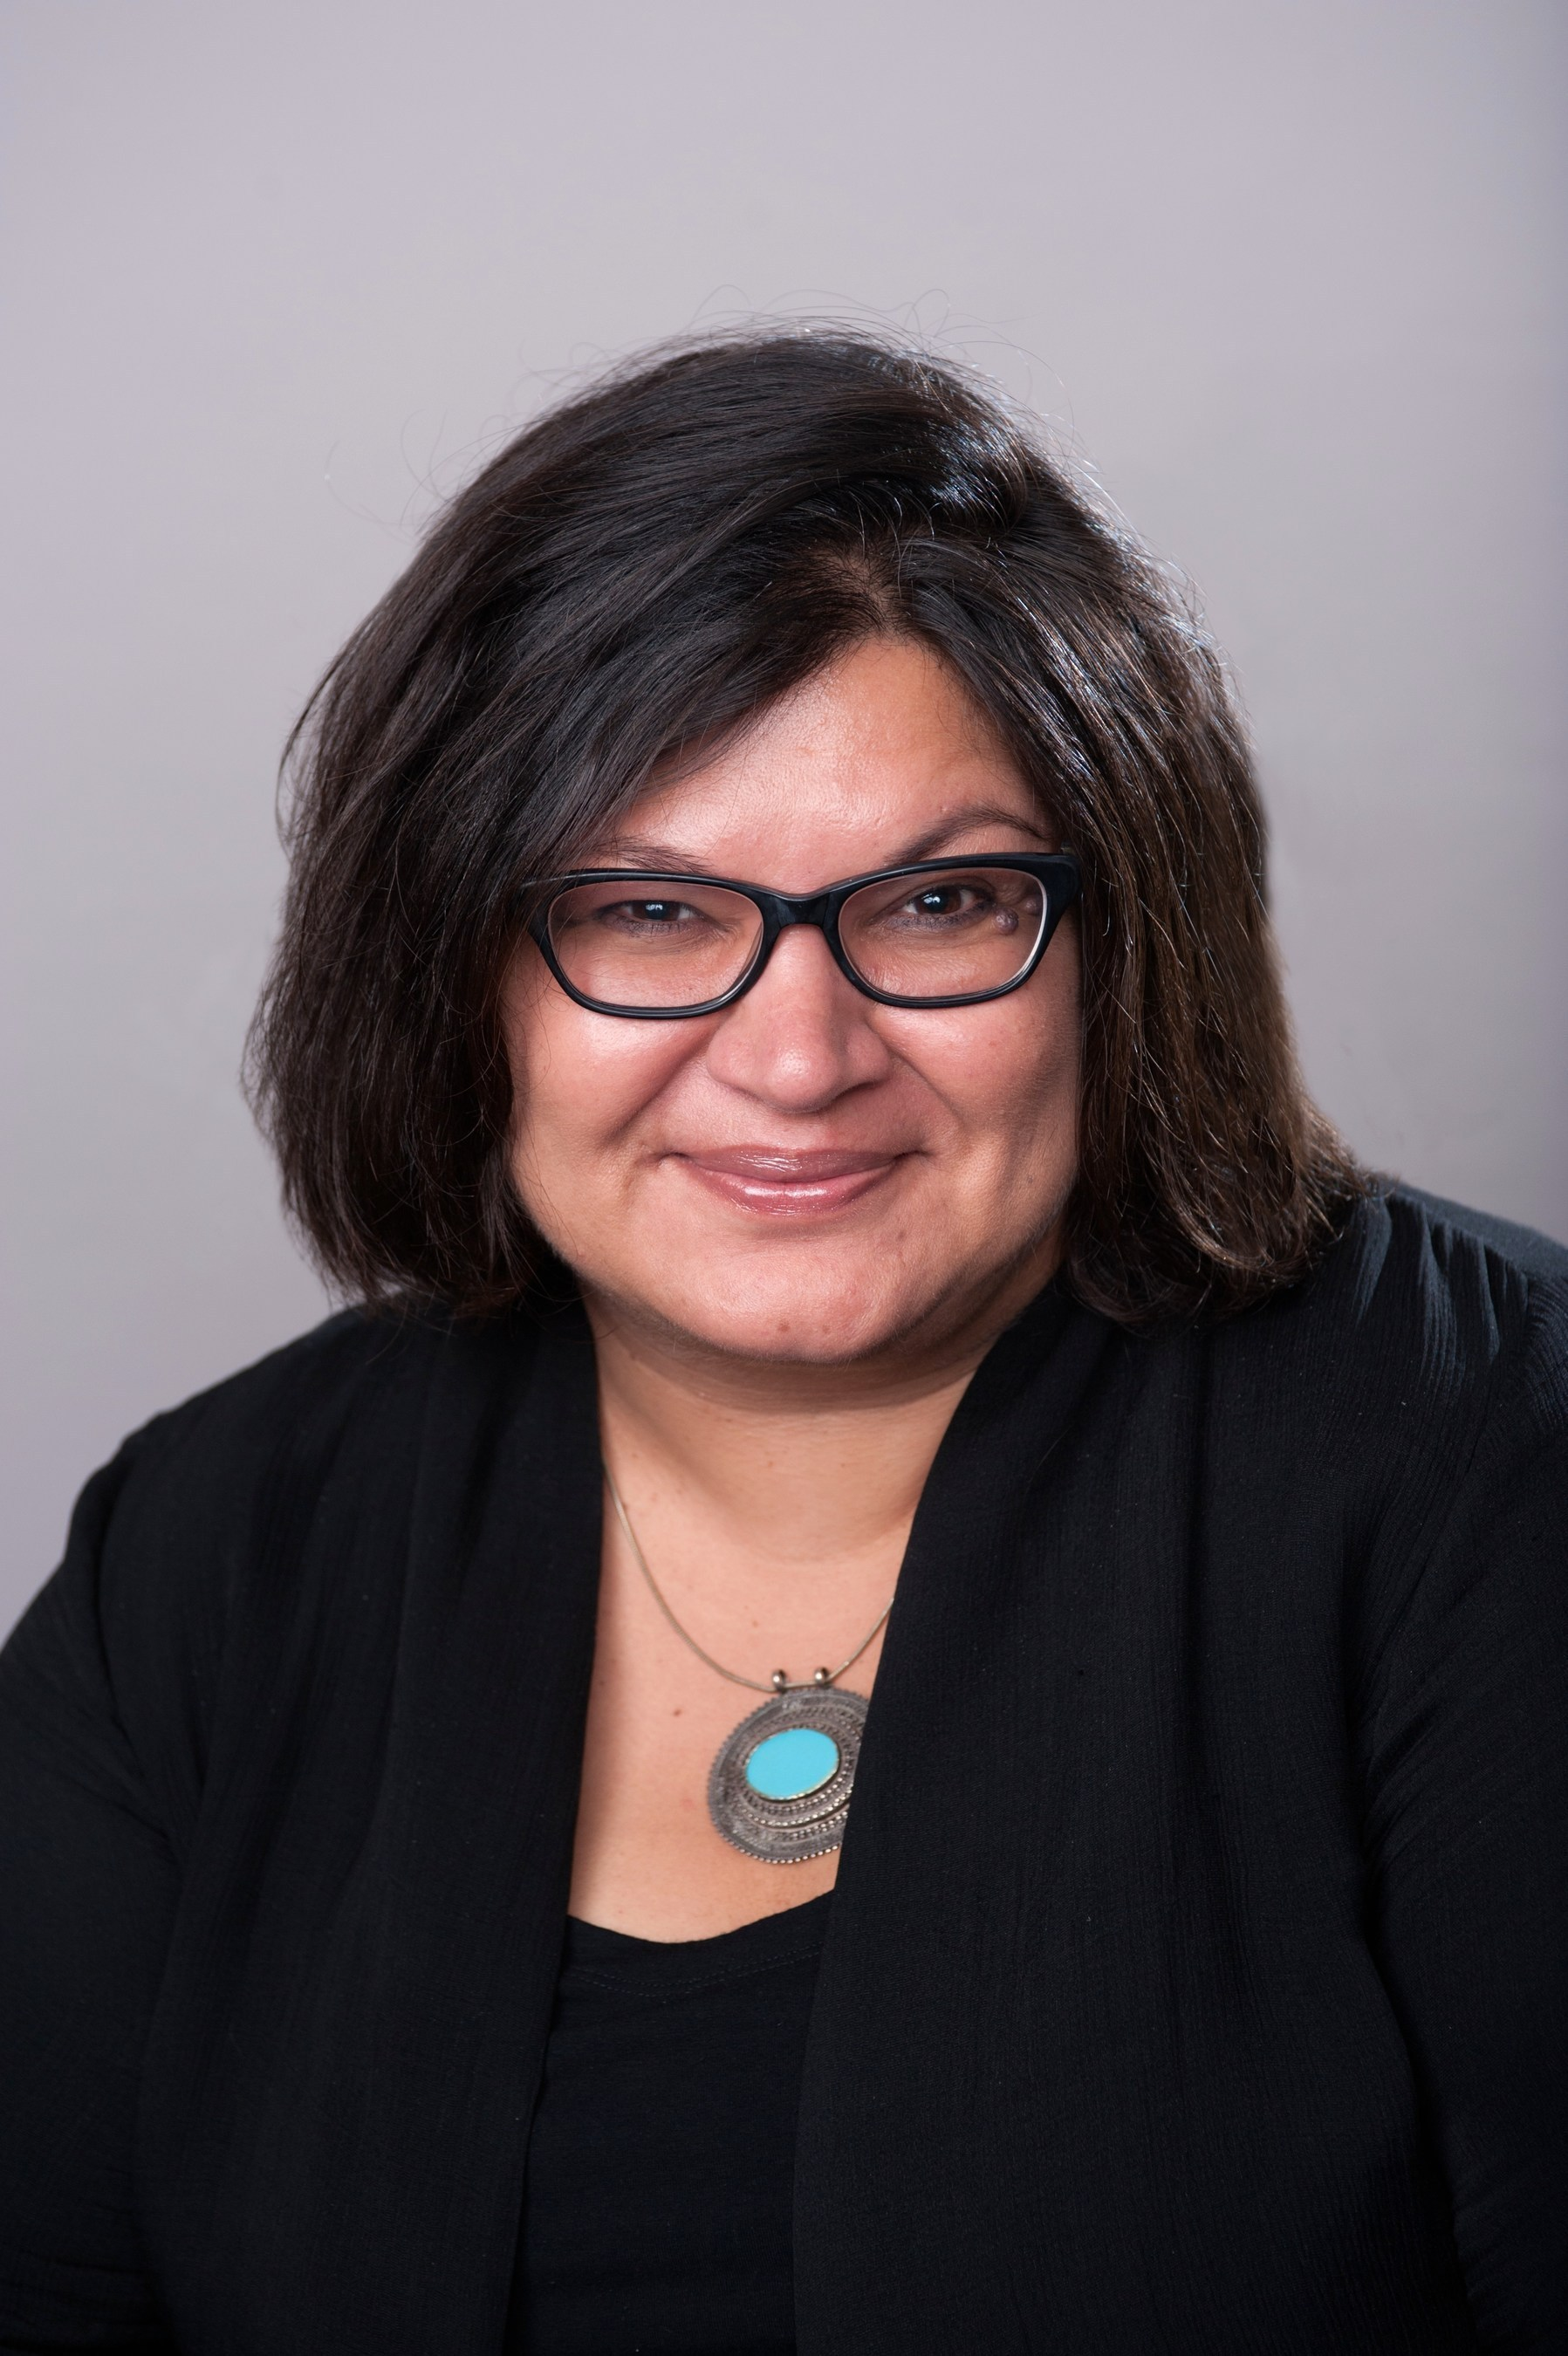 Surina Khan has been selected as the new CEO of the Women's Foundation of California (PRNewsFoto/Women's Foundation of Cali.)